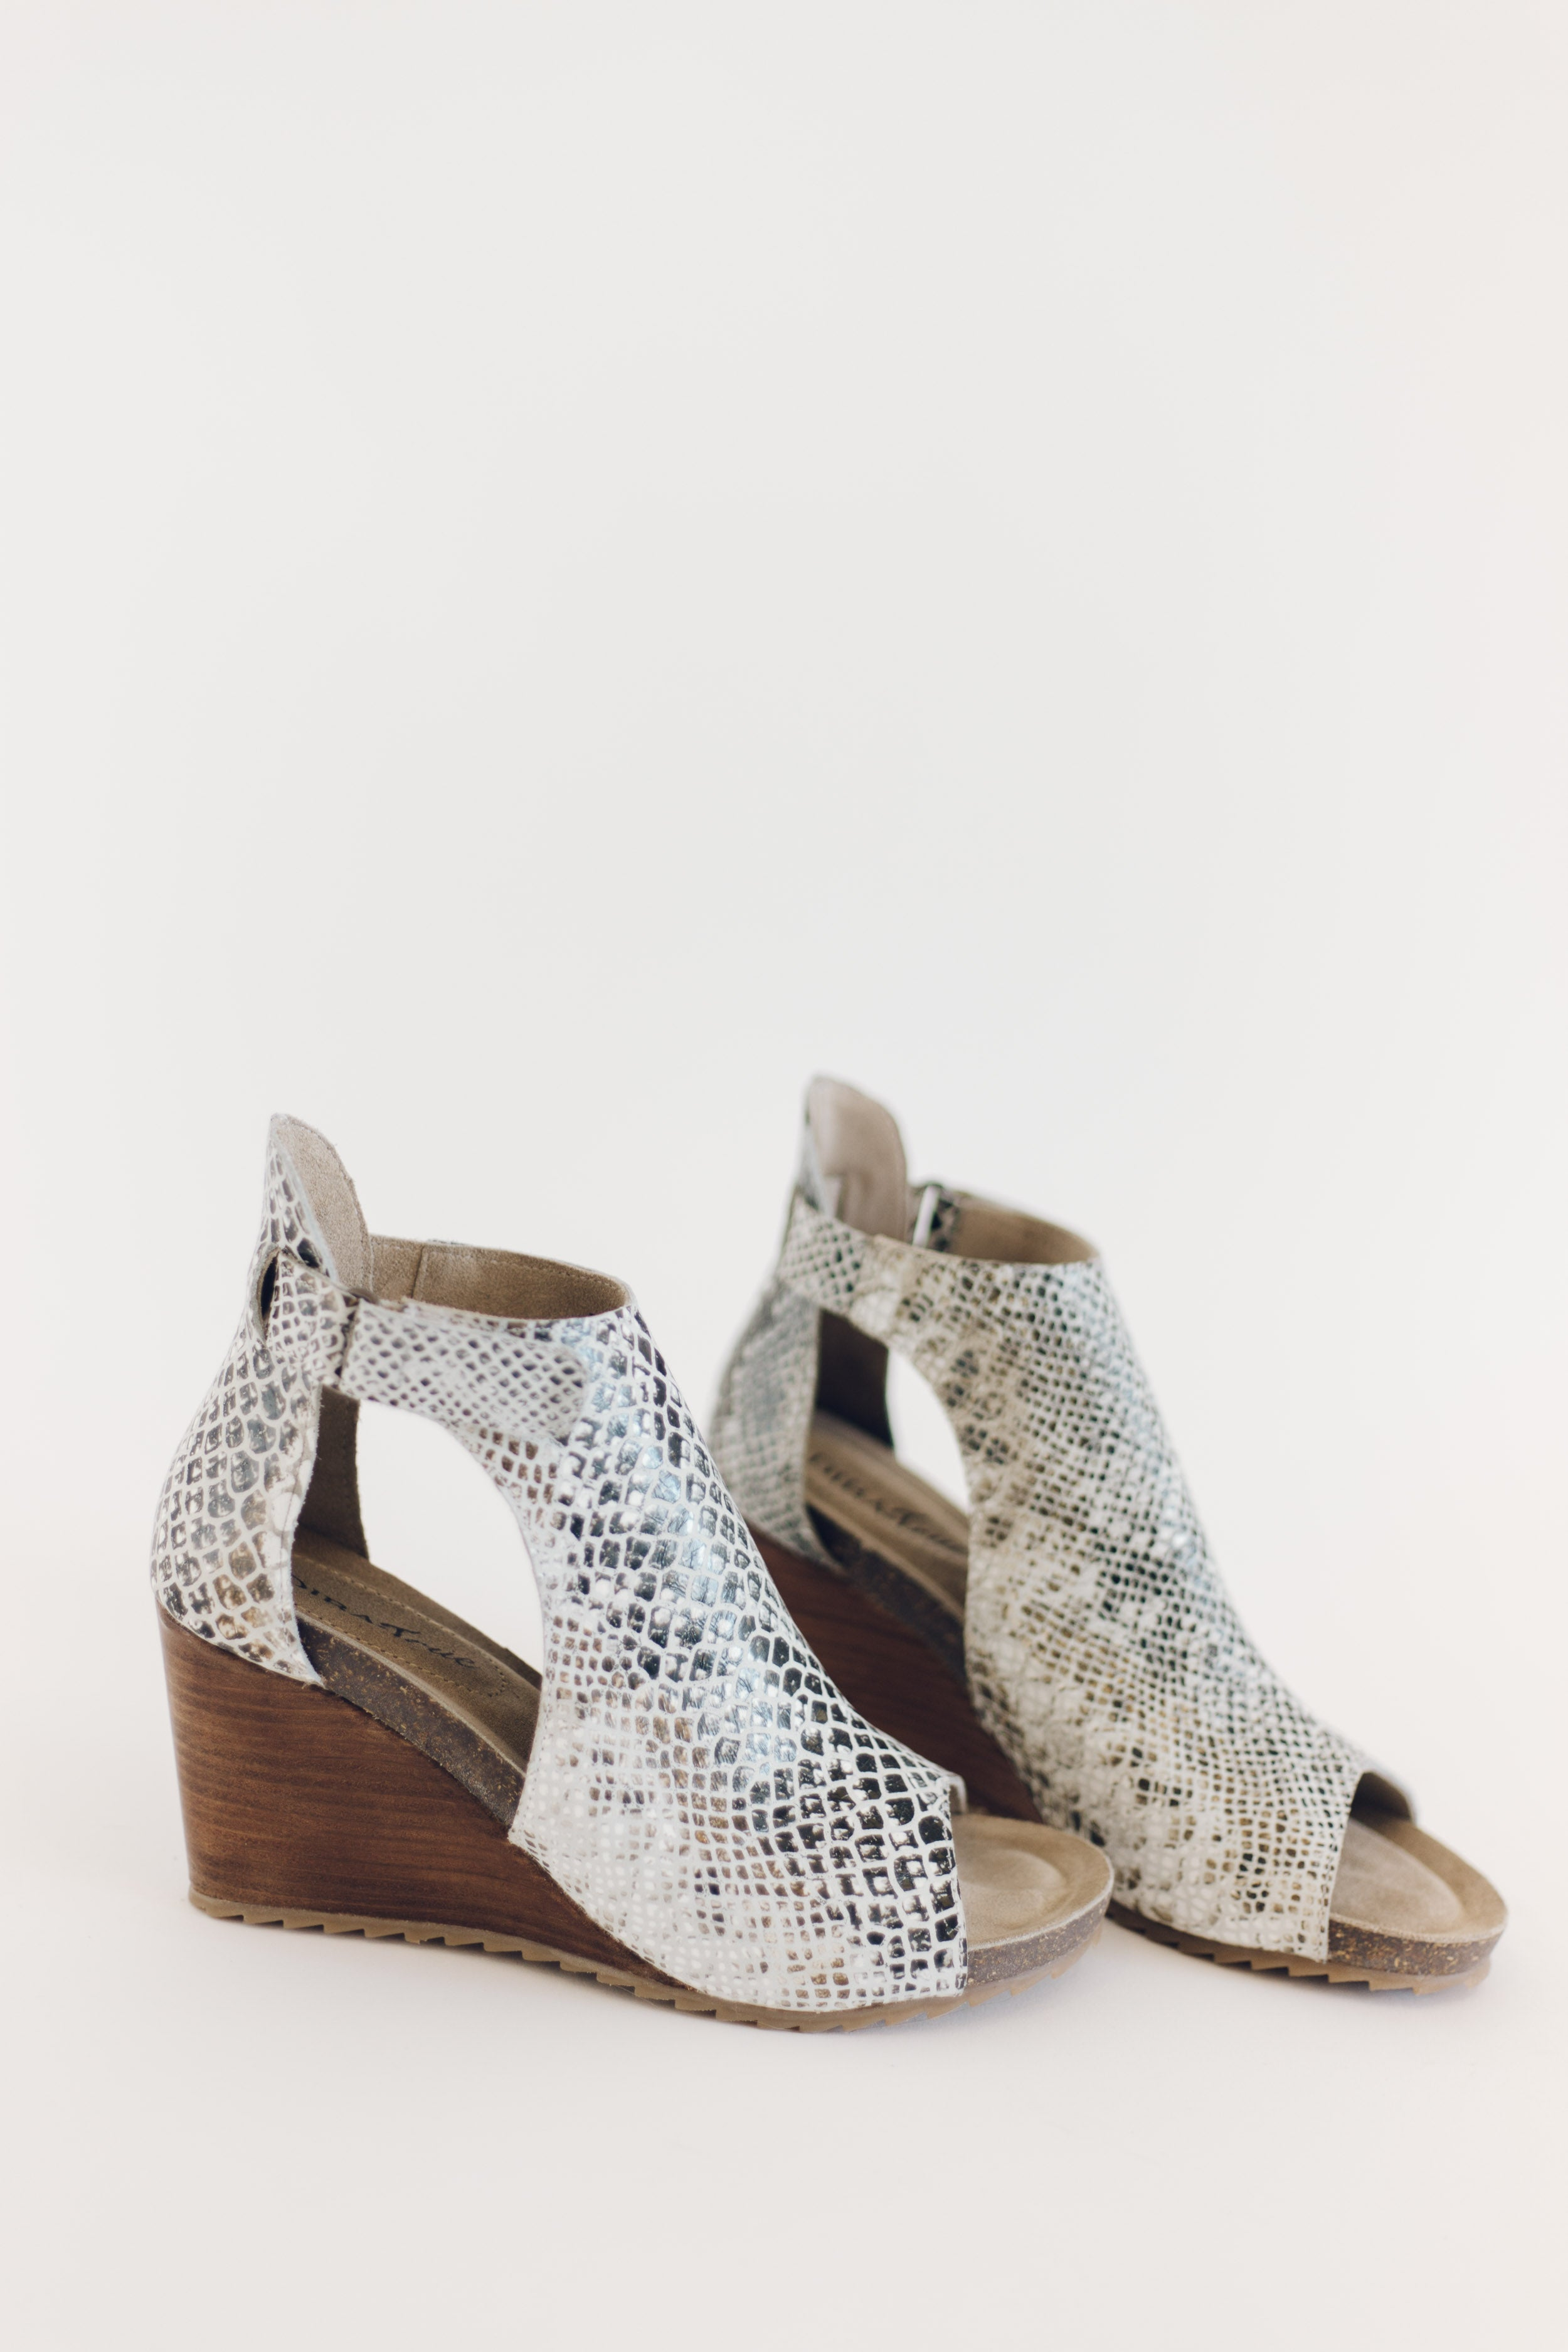 New Year Snake Print Leather Wedge